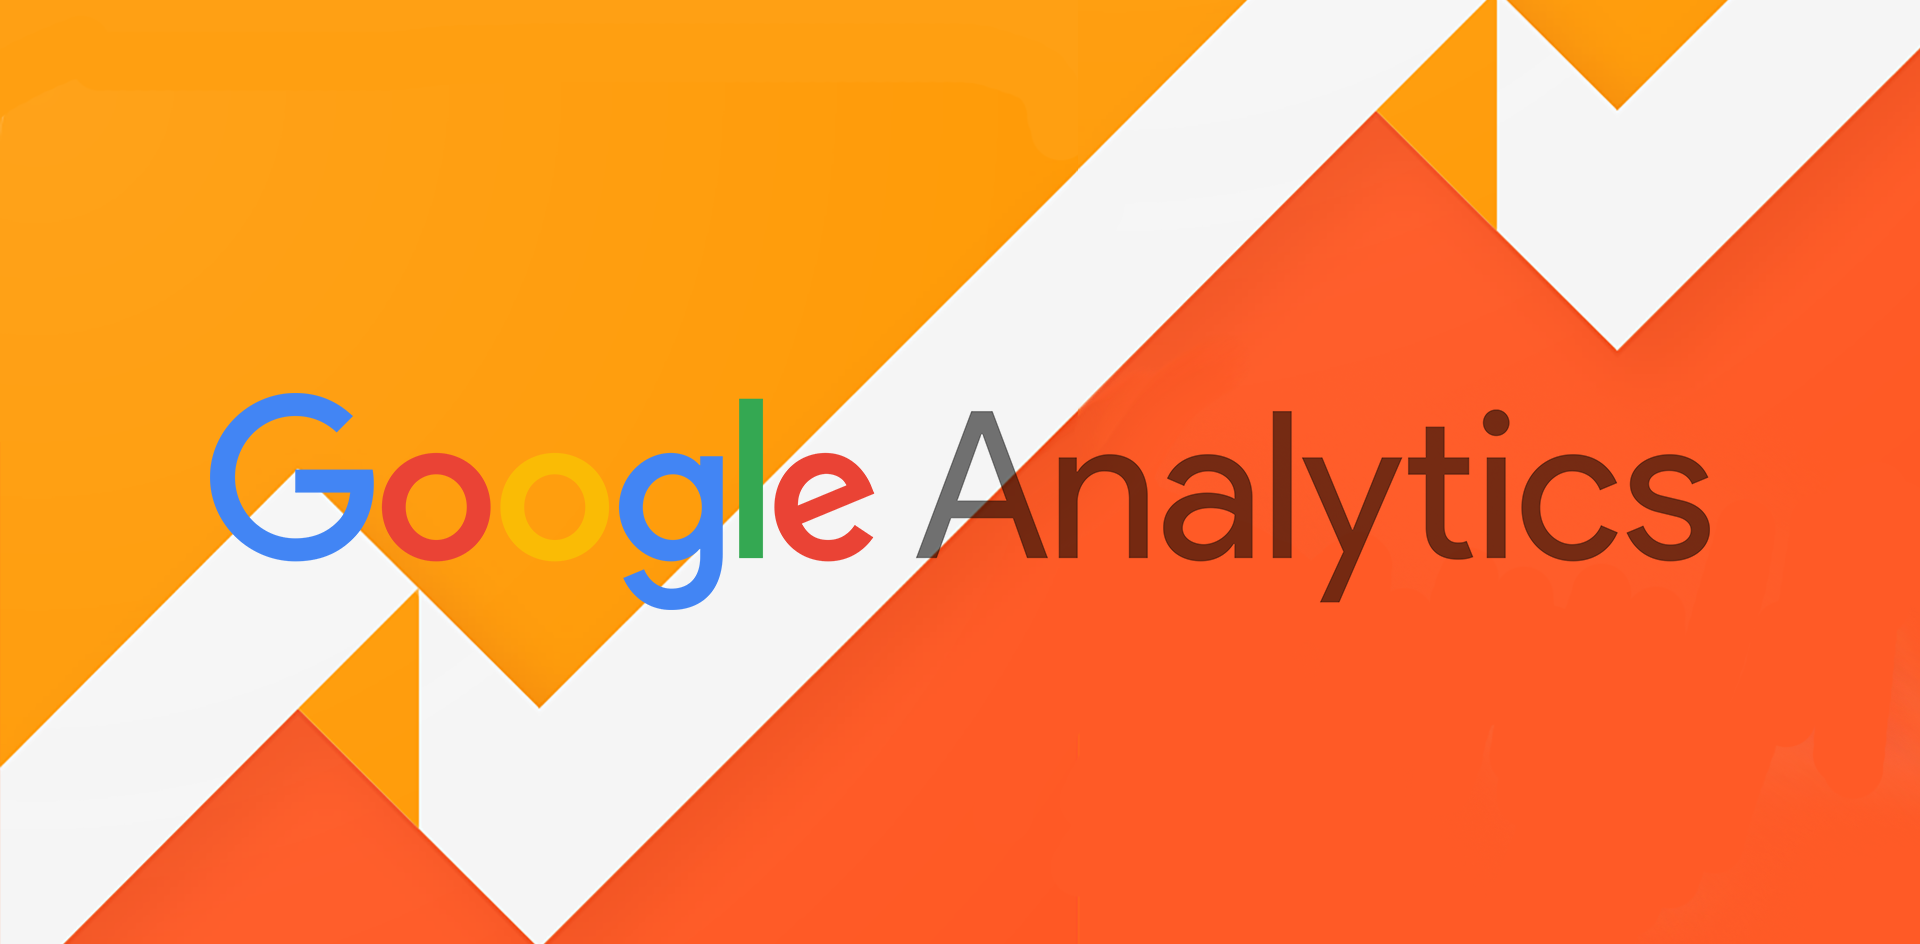 google-analytics-web tools for e-commerce